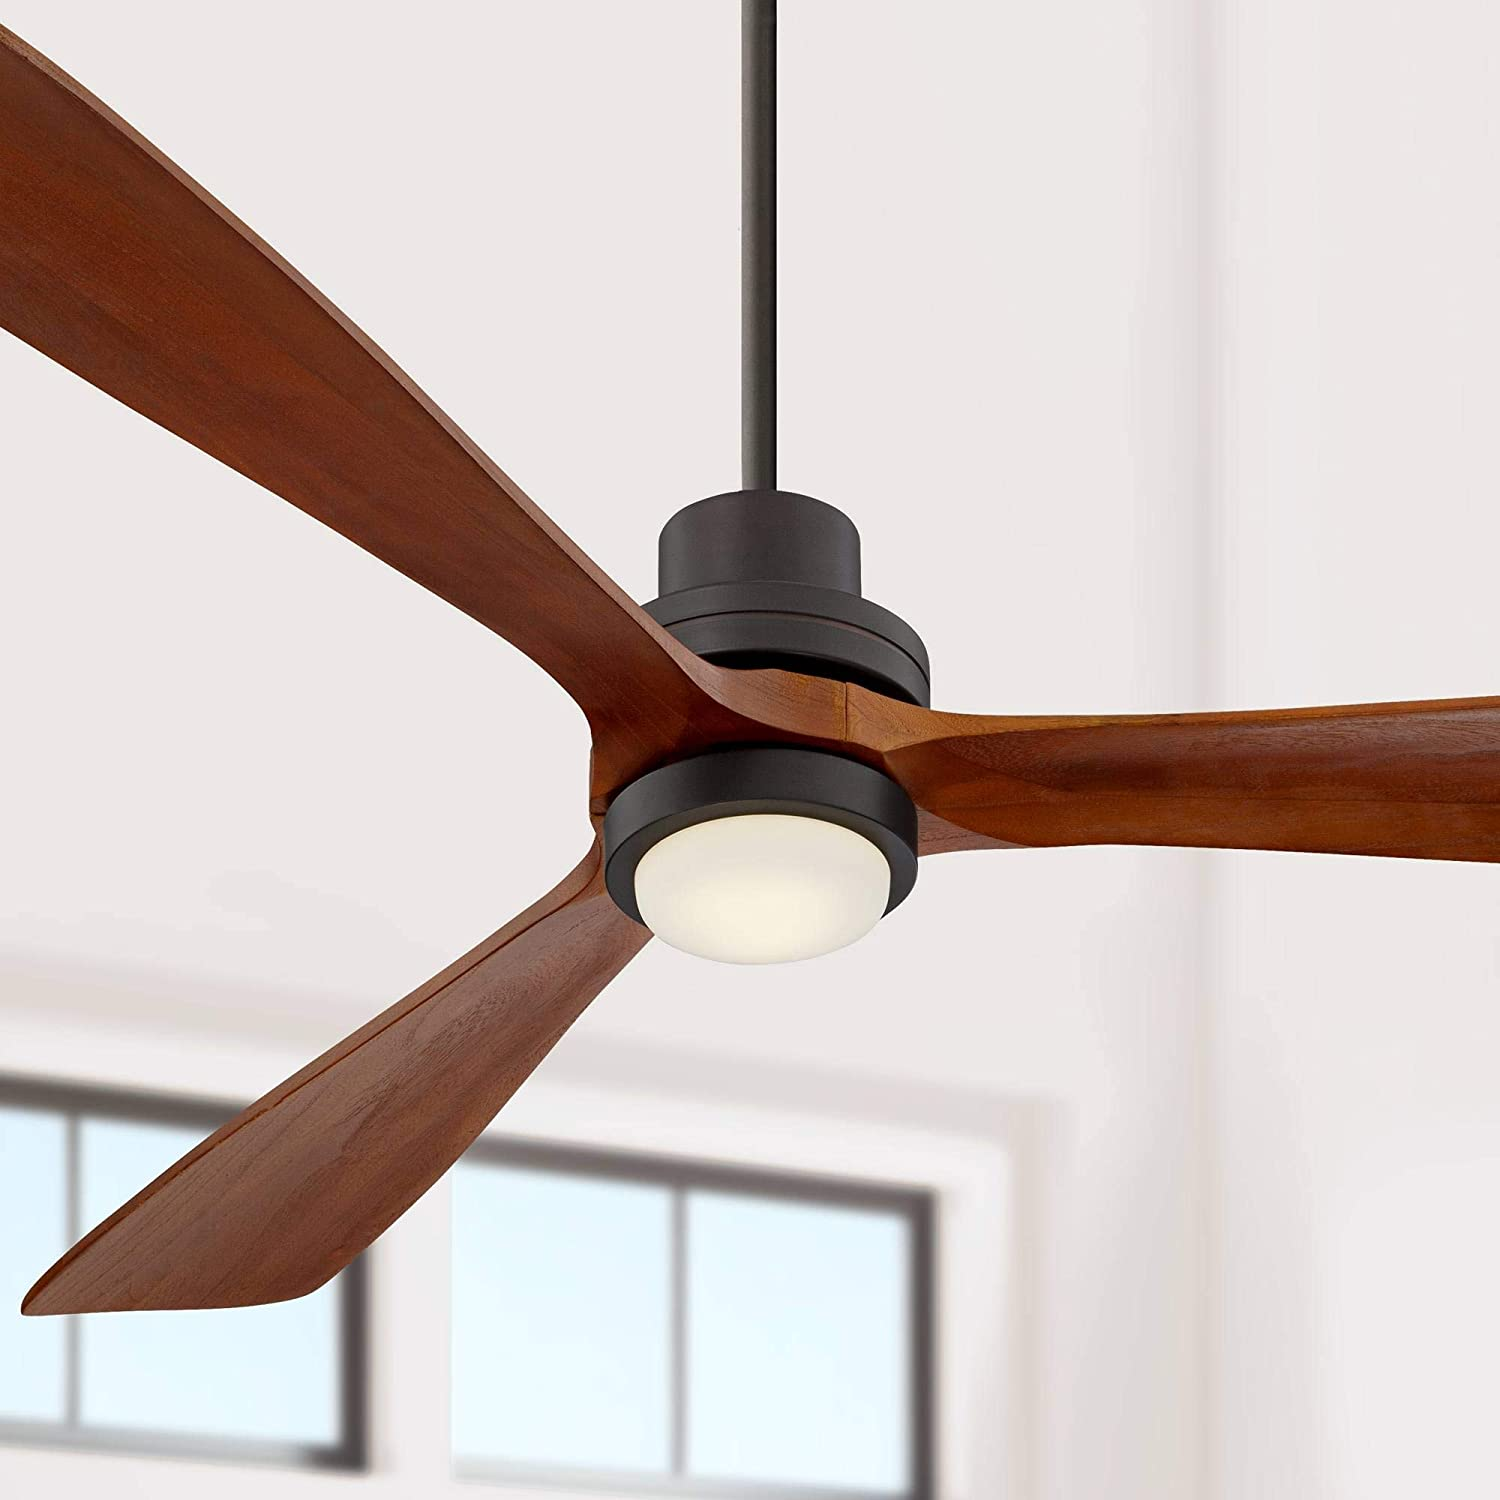 66 Casa Delta Wing Modern Contemporary 3 Blade Ceiling Fan With Light Led Remote Oil Rubbed Bronze Wood Opal Glass For House Bedroom Living Room Home Kitchen Dining Office Casa Vieja